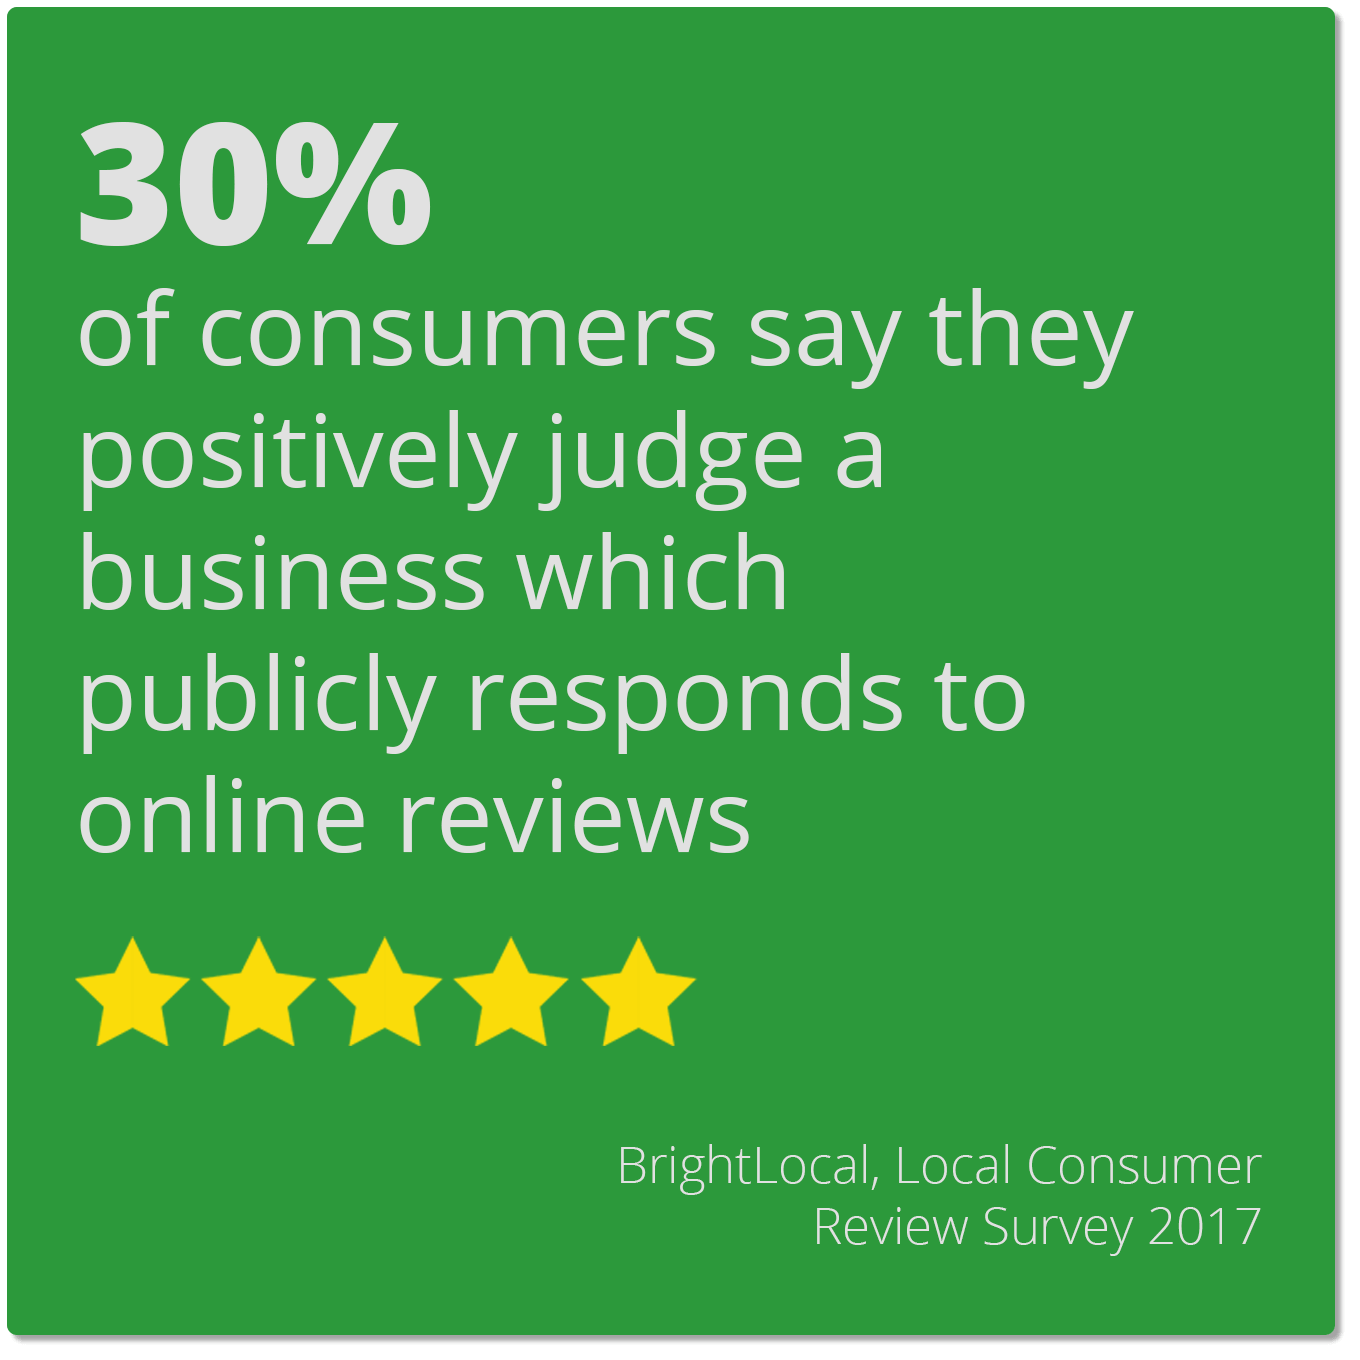 30% of consumers say they positively judge a business which publicly responds to online reviews